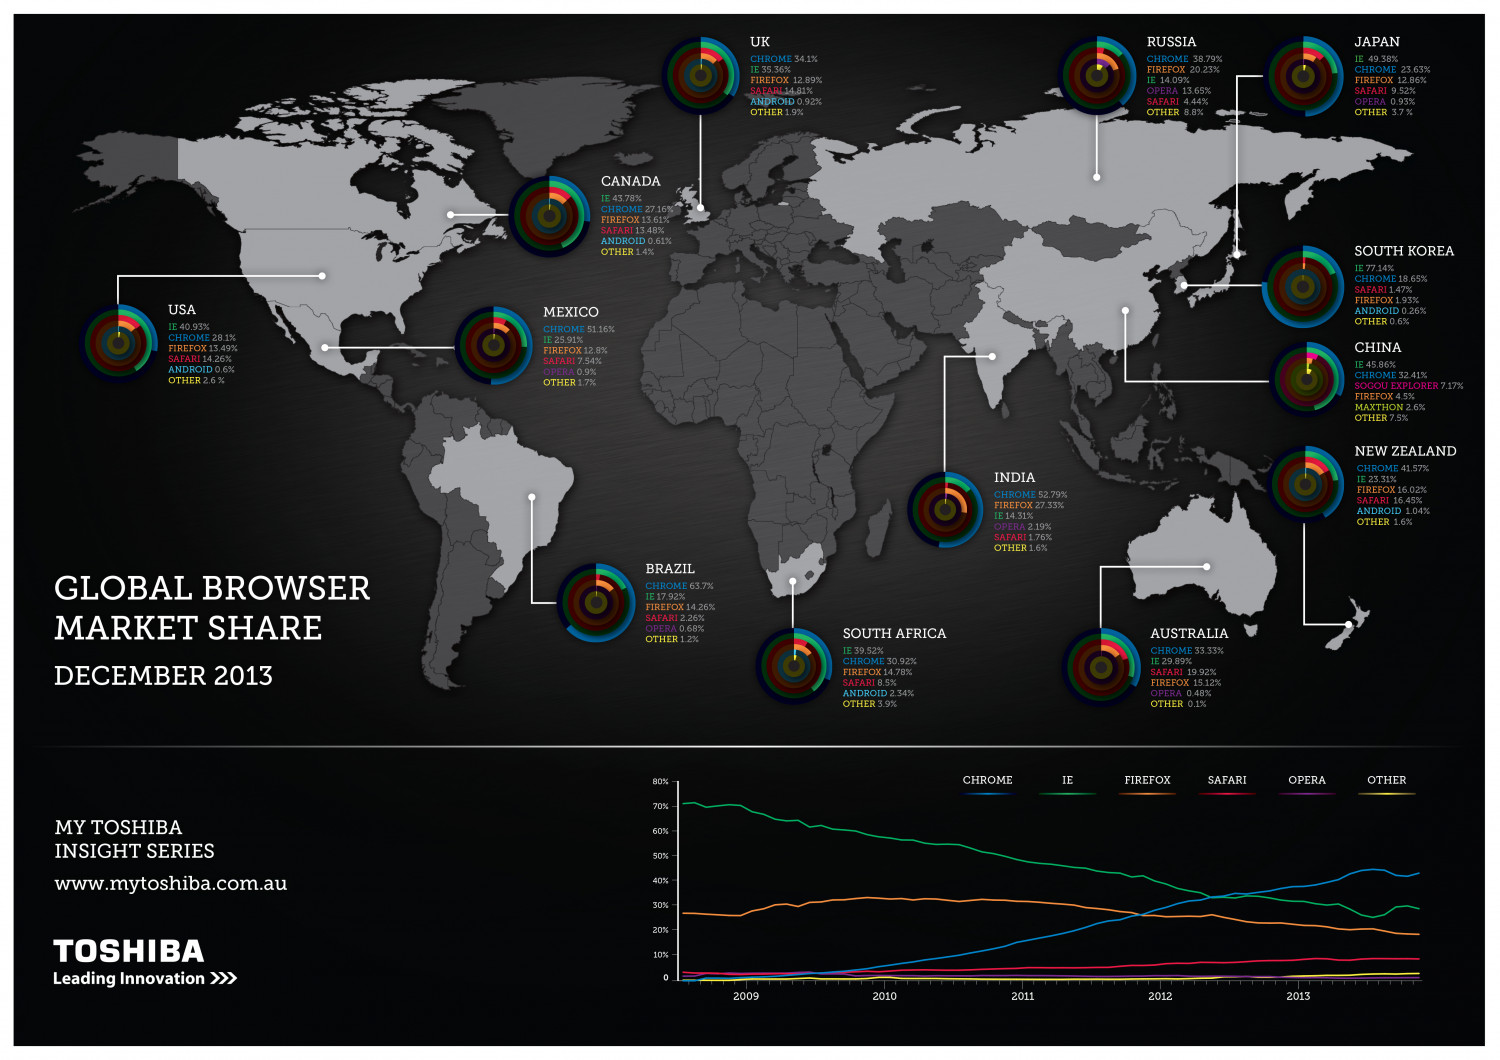 World Web Browser Market Share Infographic